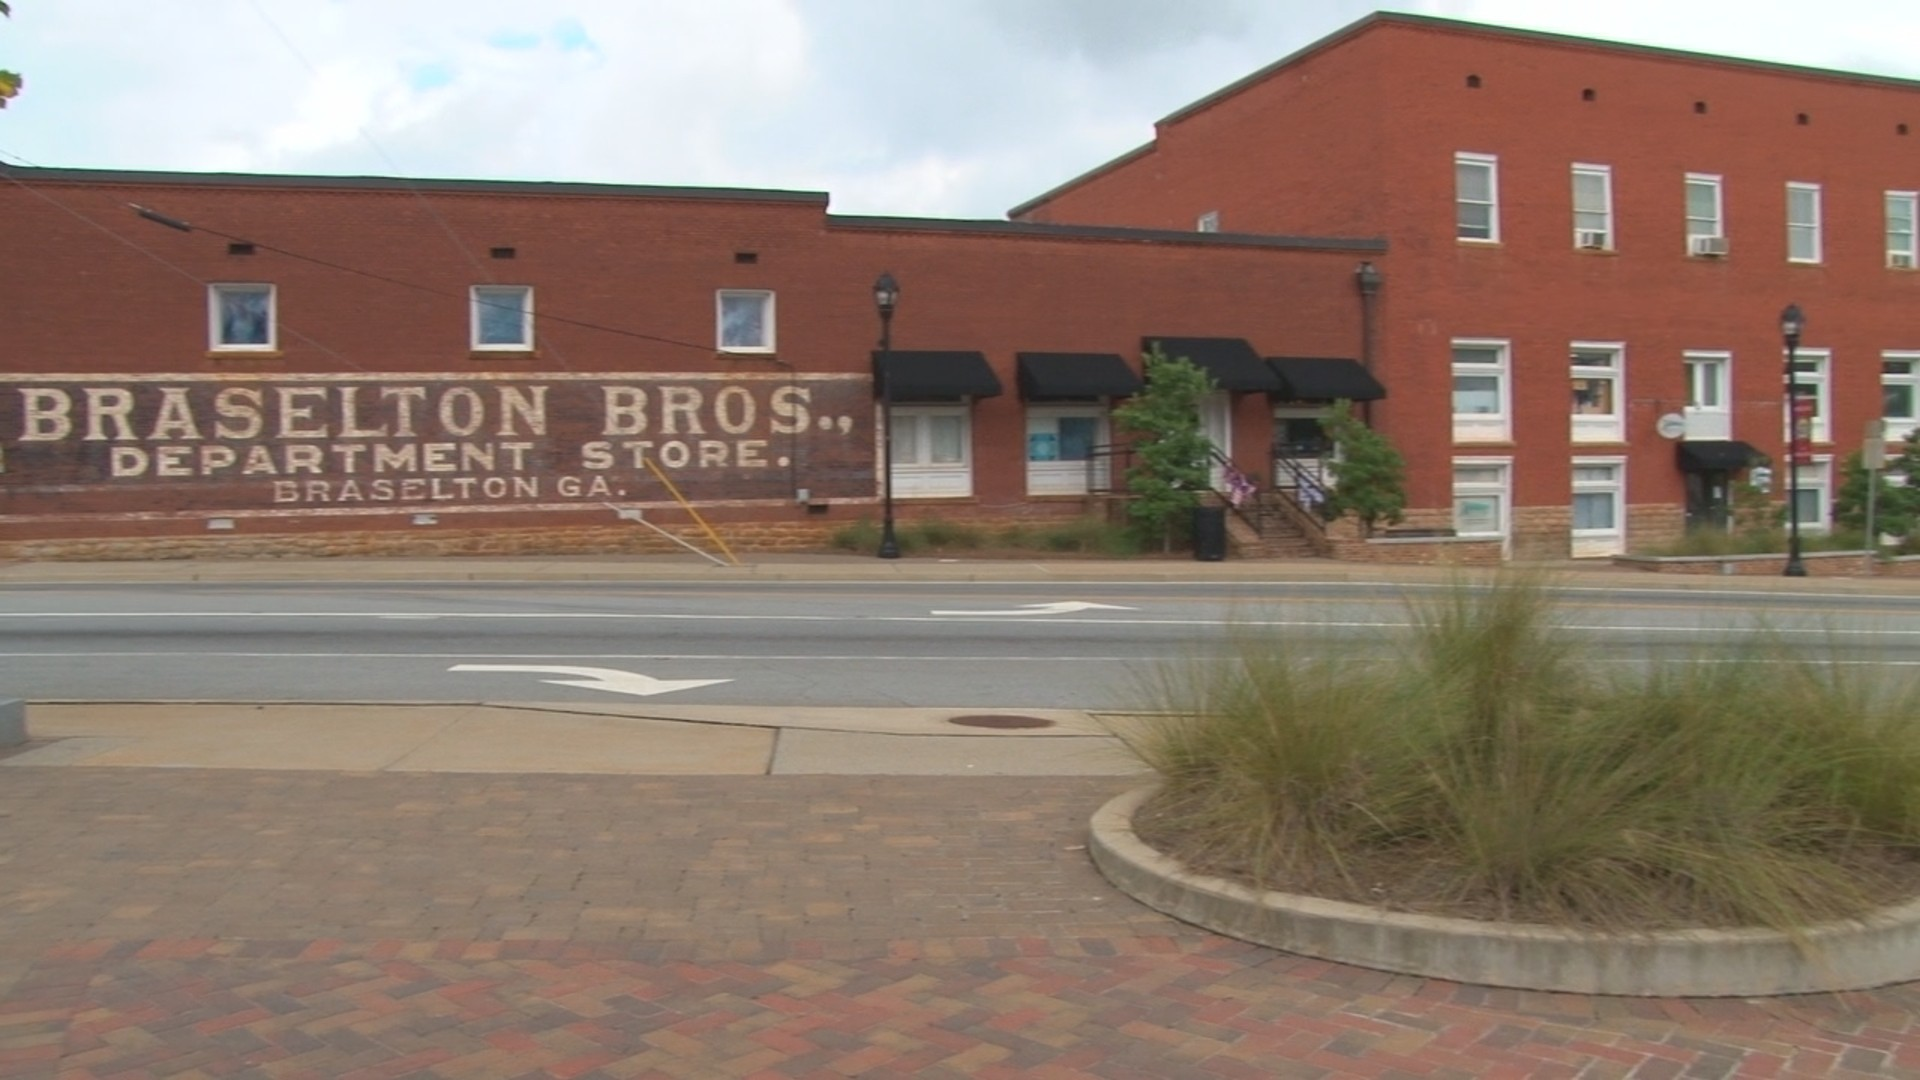 Braselton_TraditionsOfBr00120171103165827